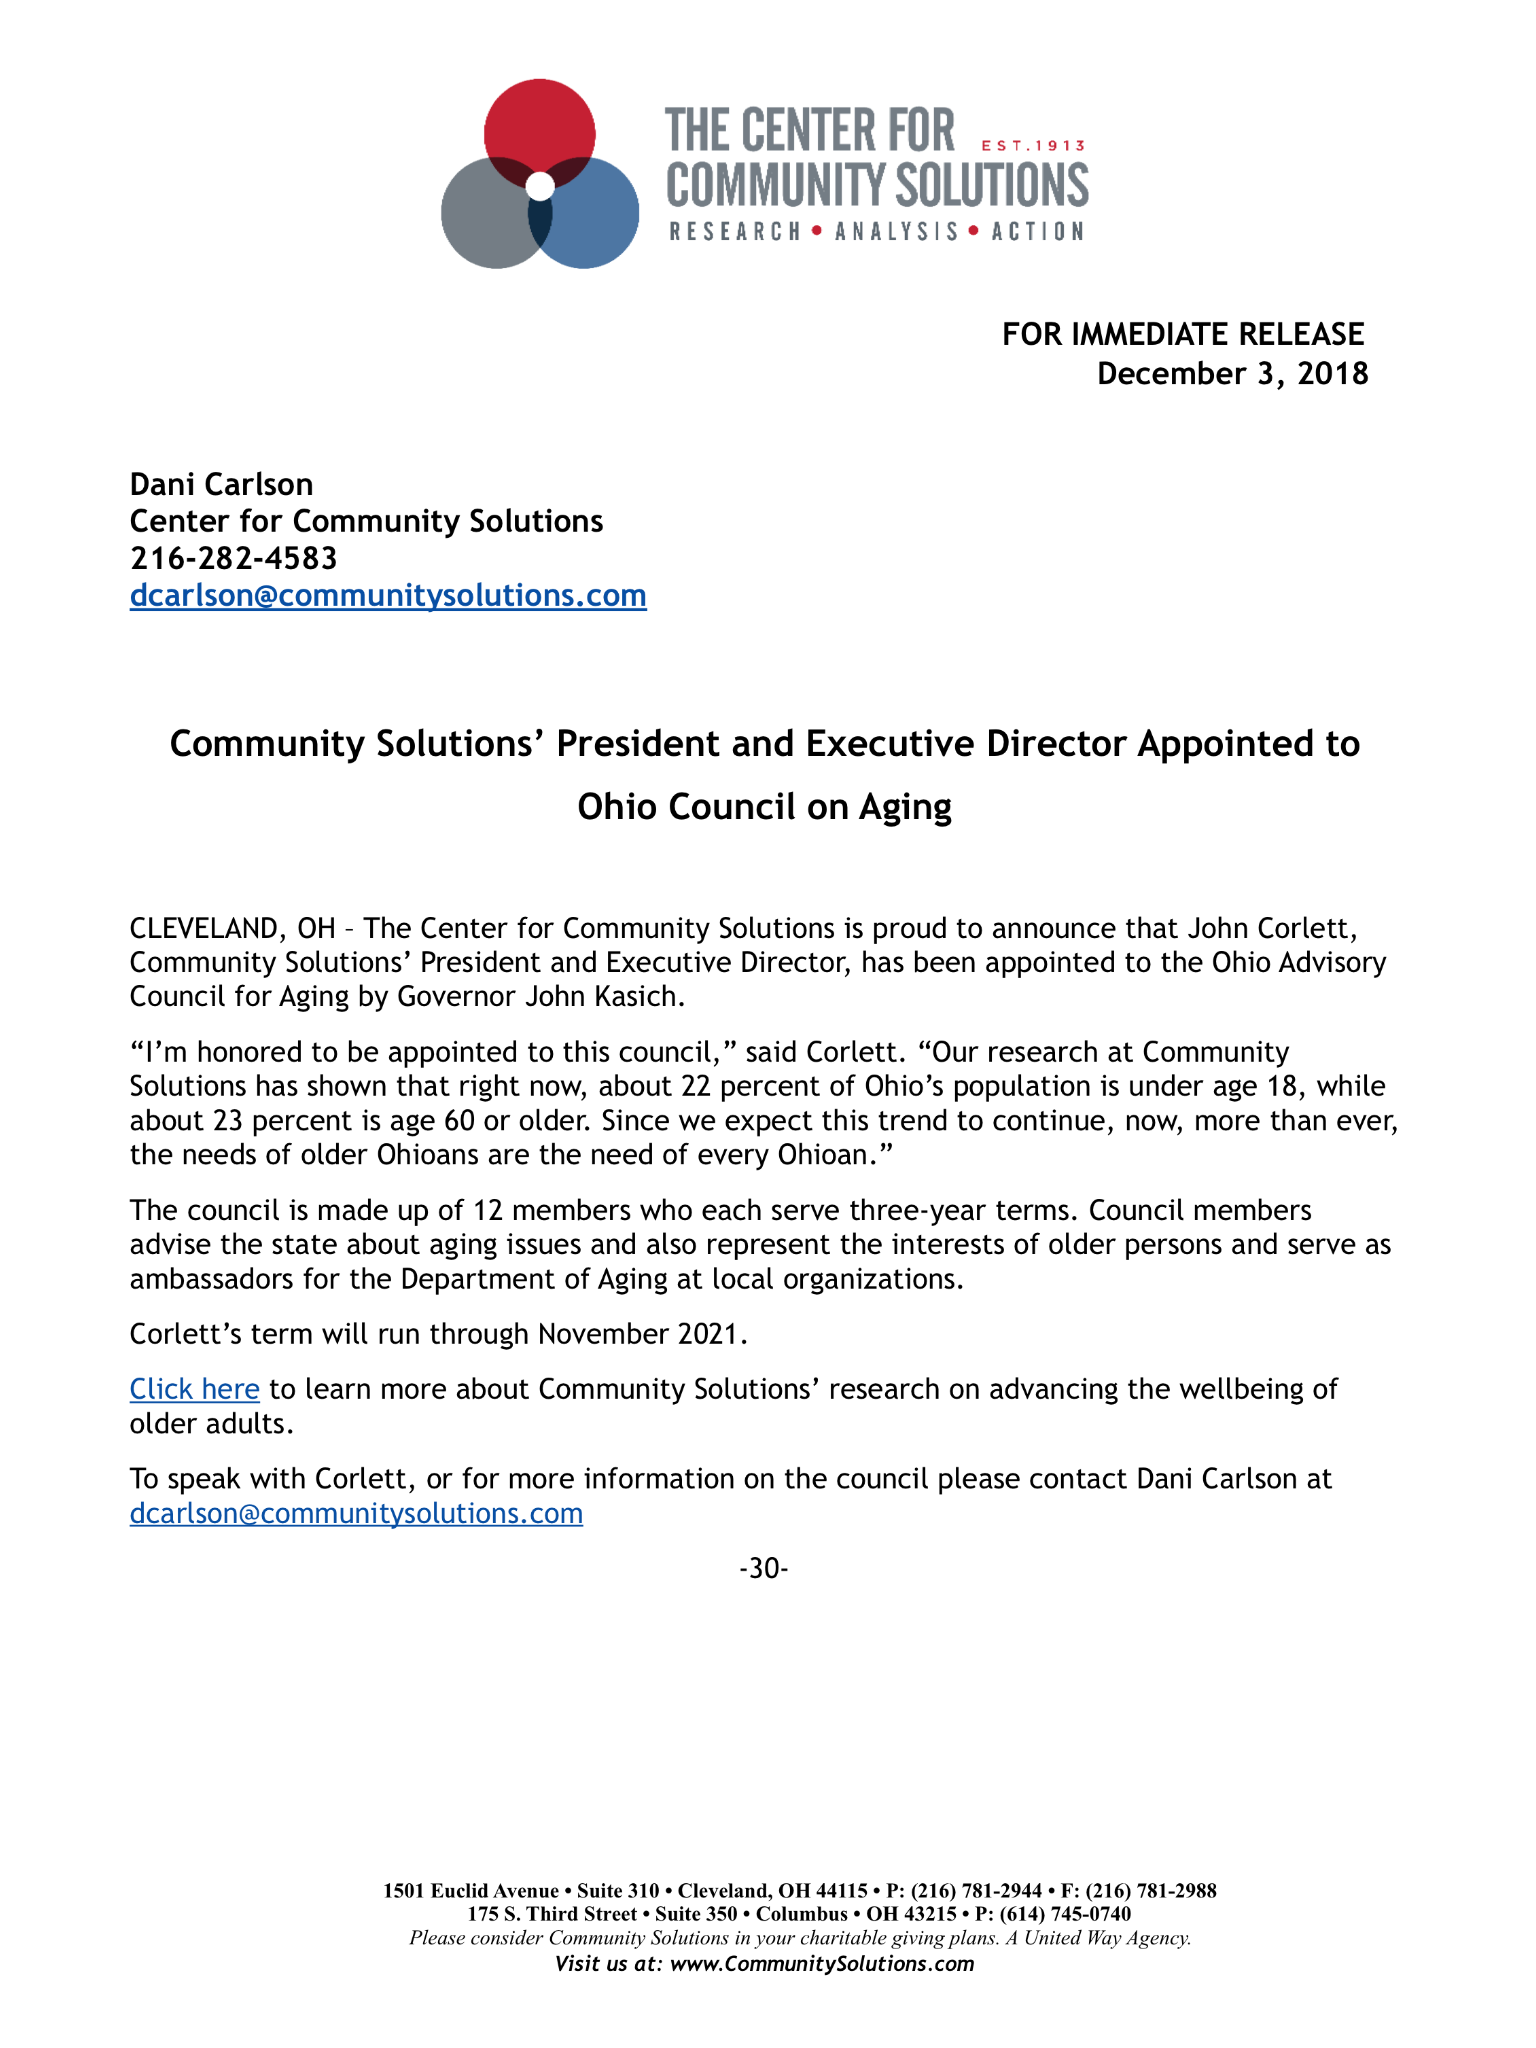 President and Executive Director Appointed to Ohio Council on Aging